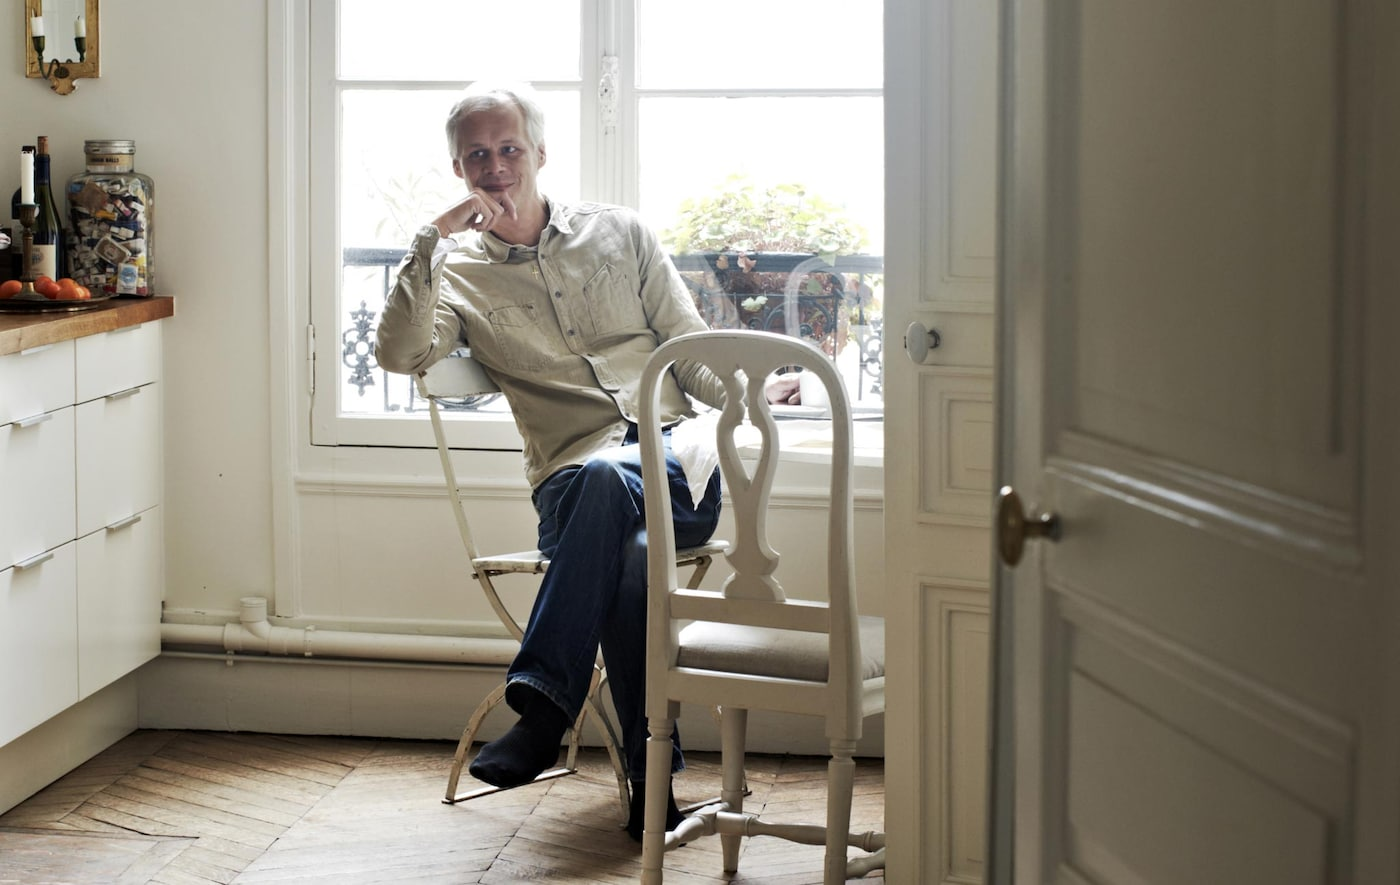 Stylist Hans Blomquist relaxes at his kitchen table.